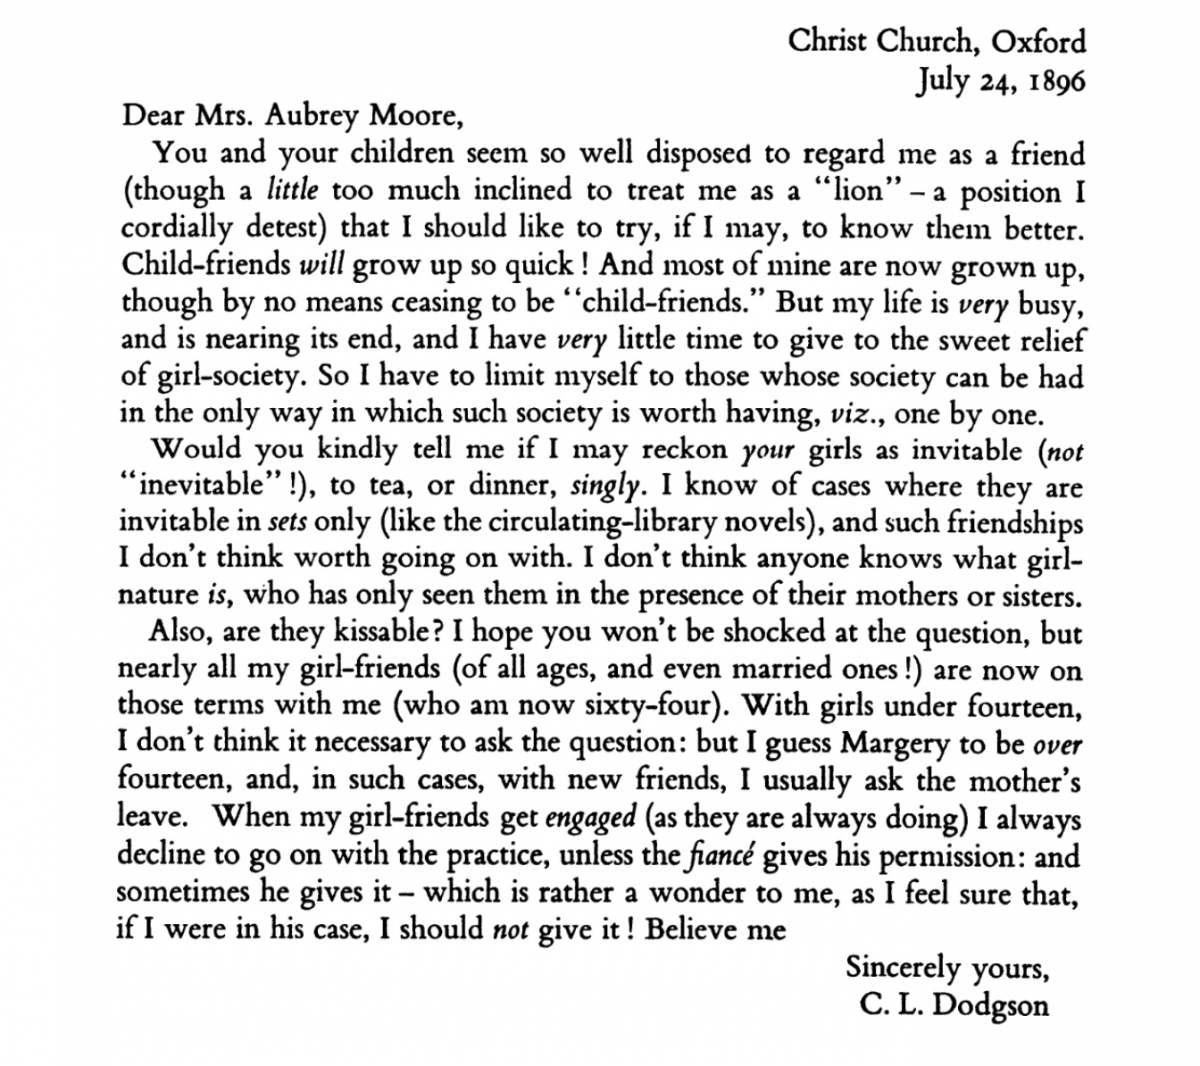 Charles Dodgson letter to Mrs. Moore (1896), edited by Morton Cohen.